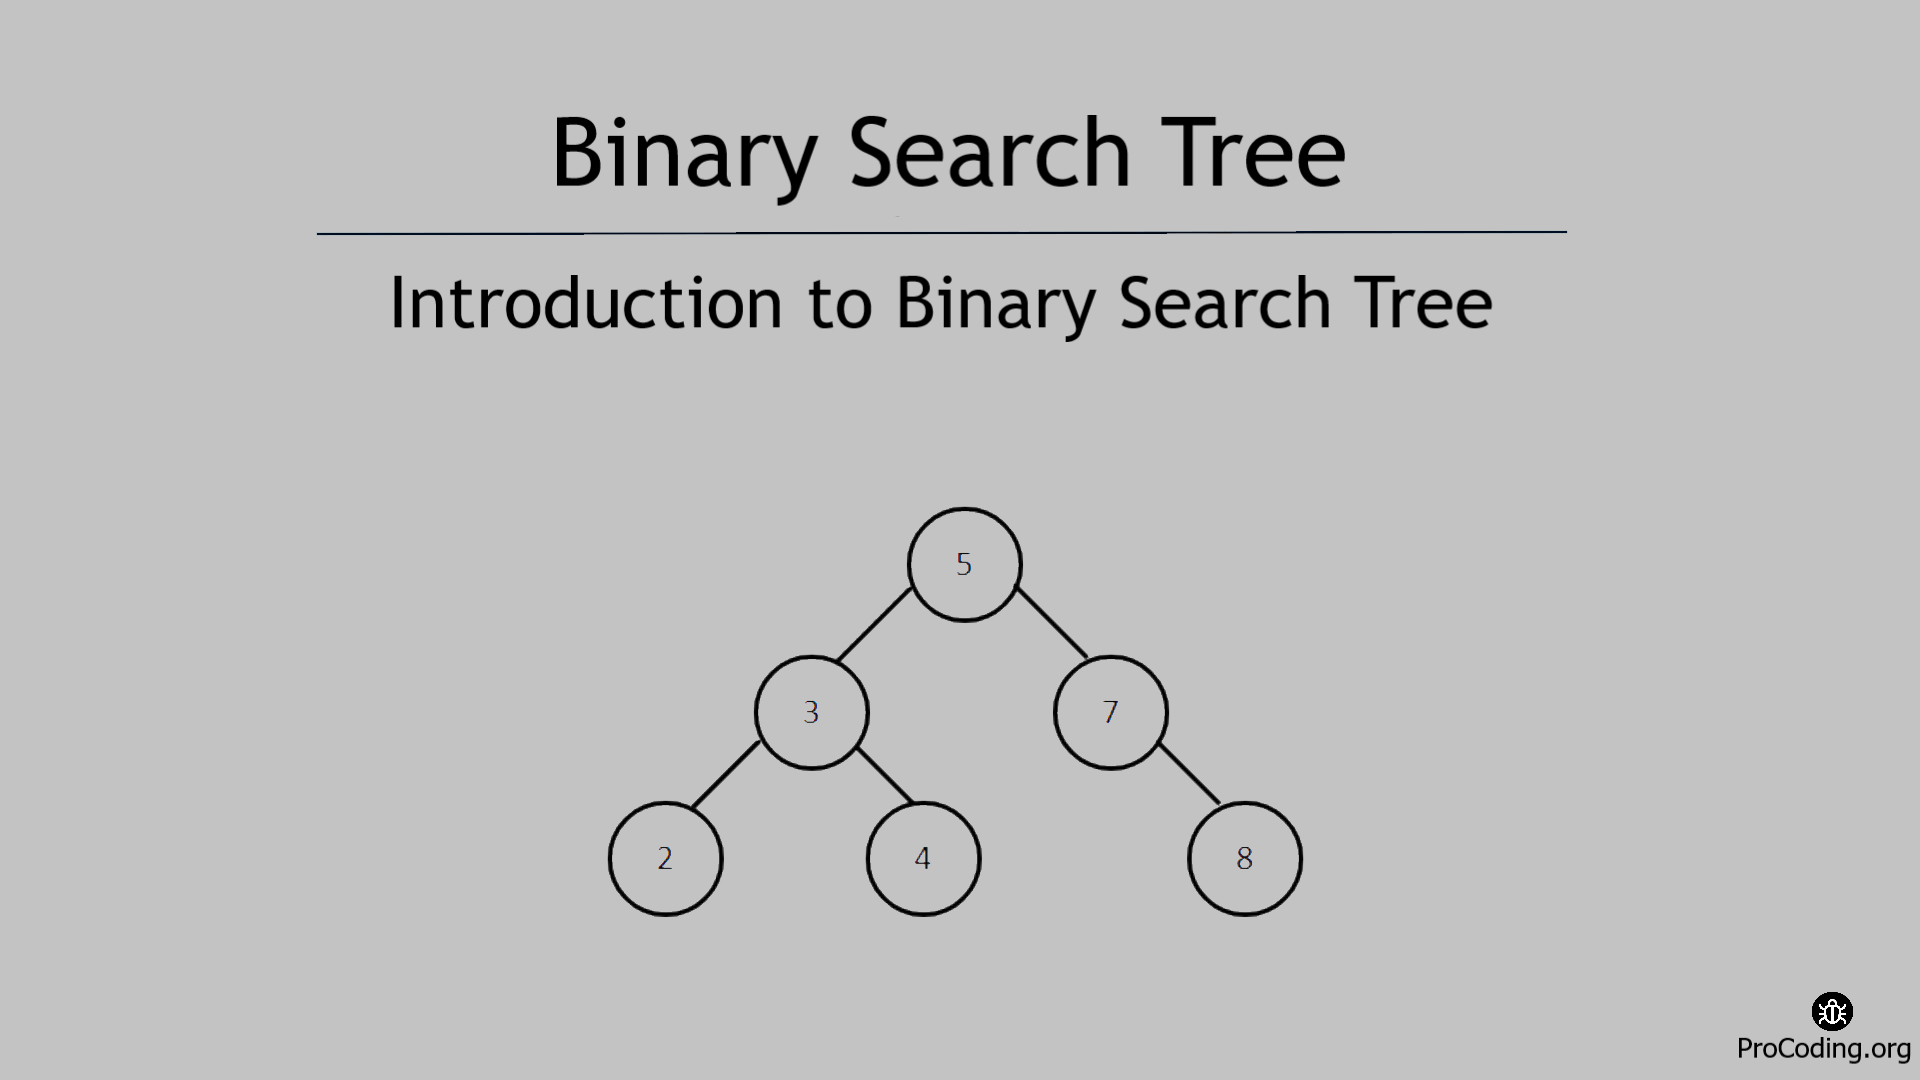 Introduction to binary search tree